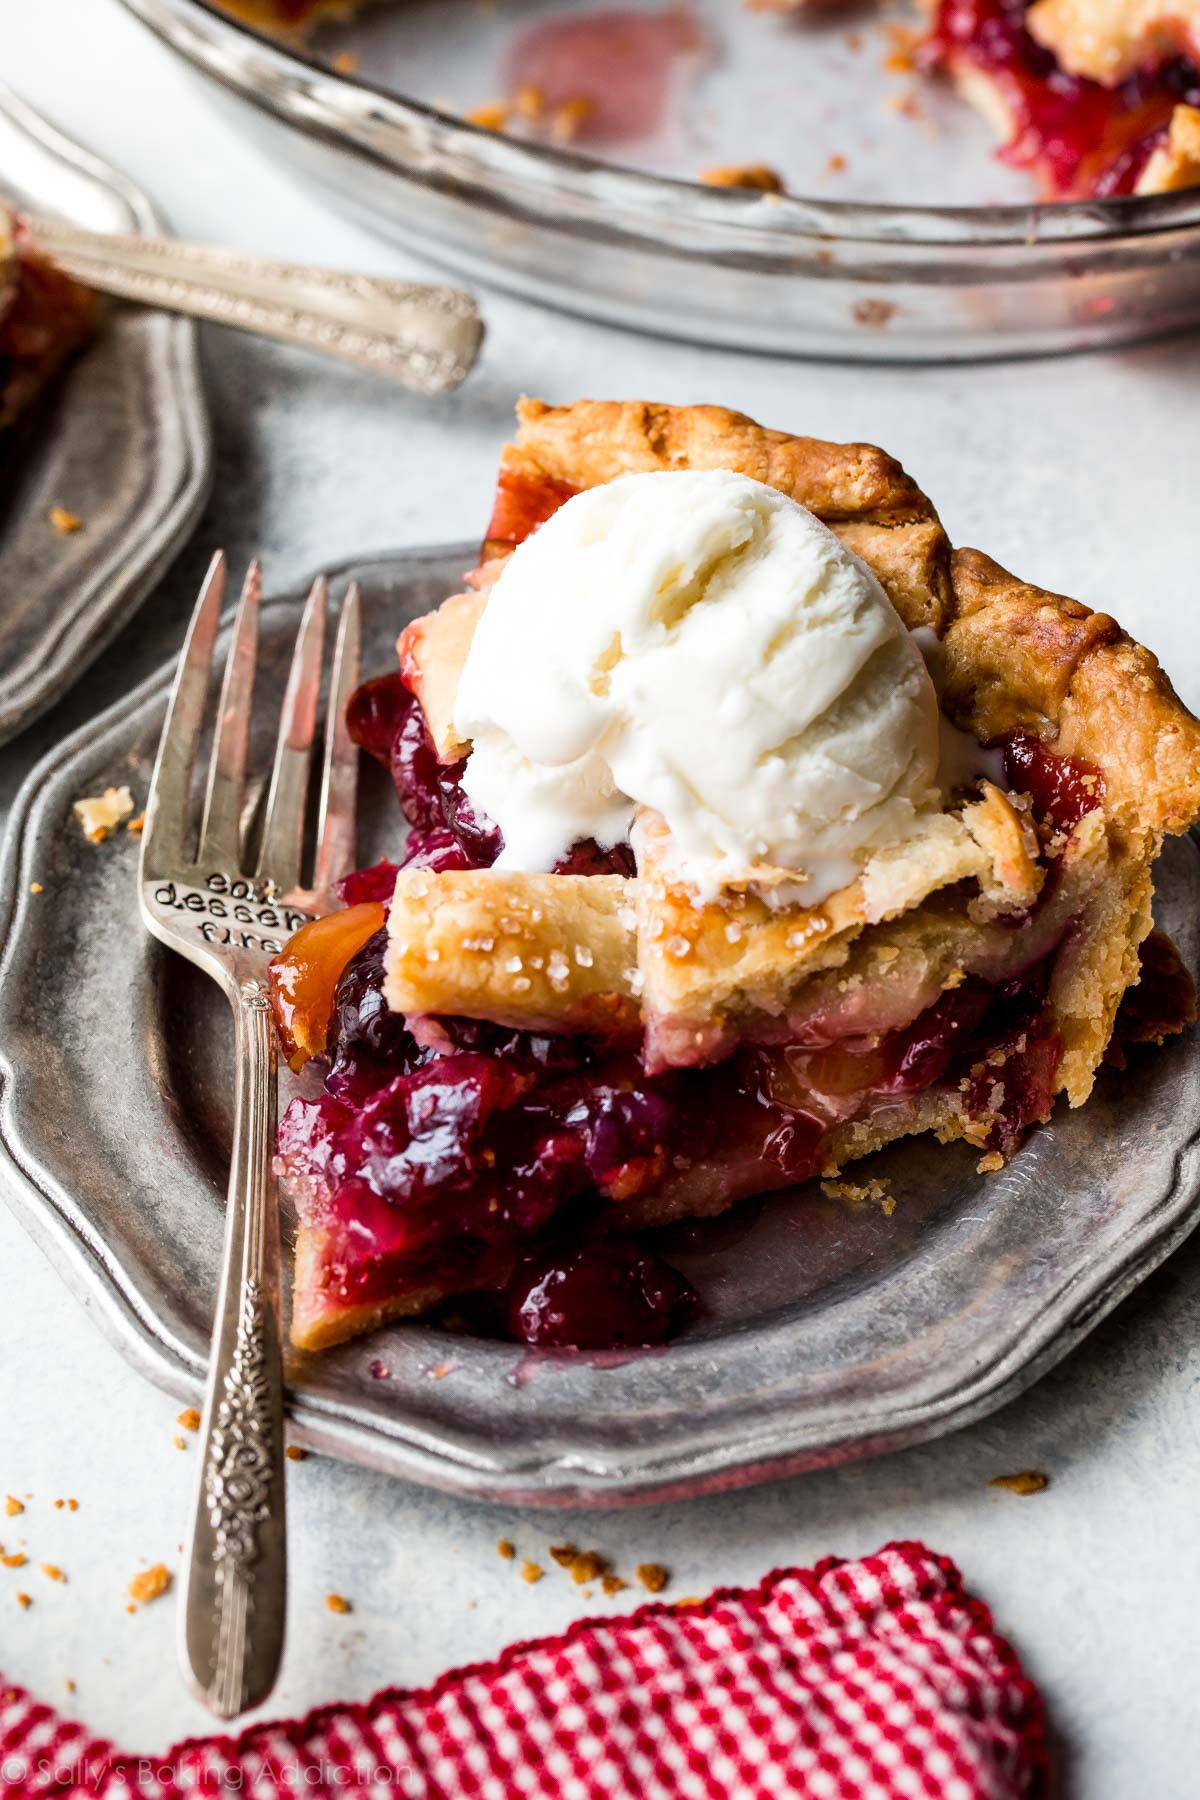 Cherry Pie Recipes  Homemade Cherry Pie Sallys Baking Addiction TheDirtyGyro